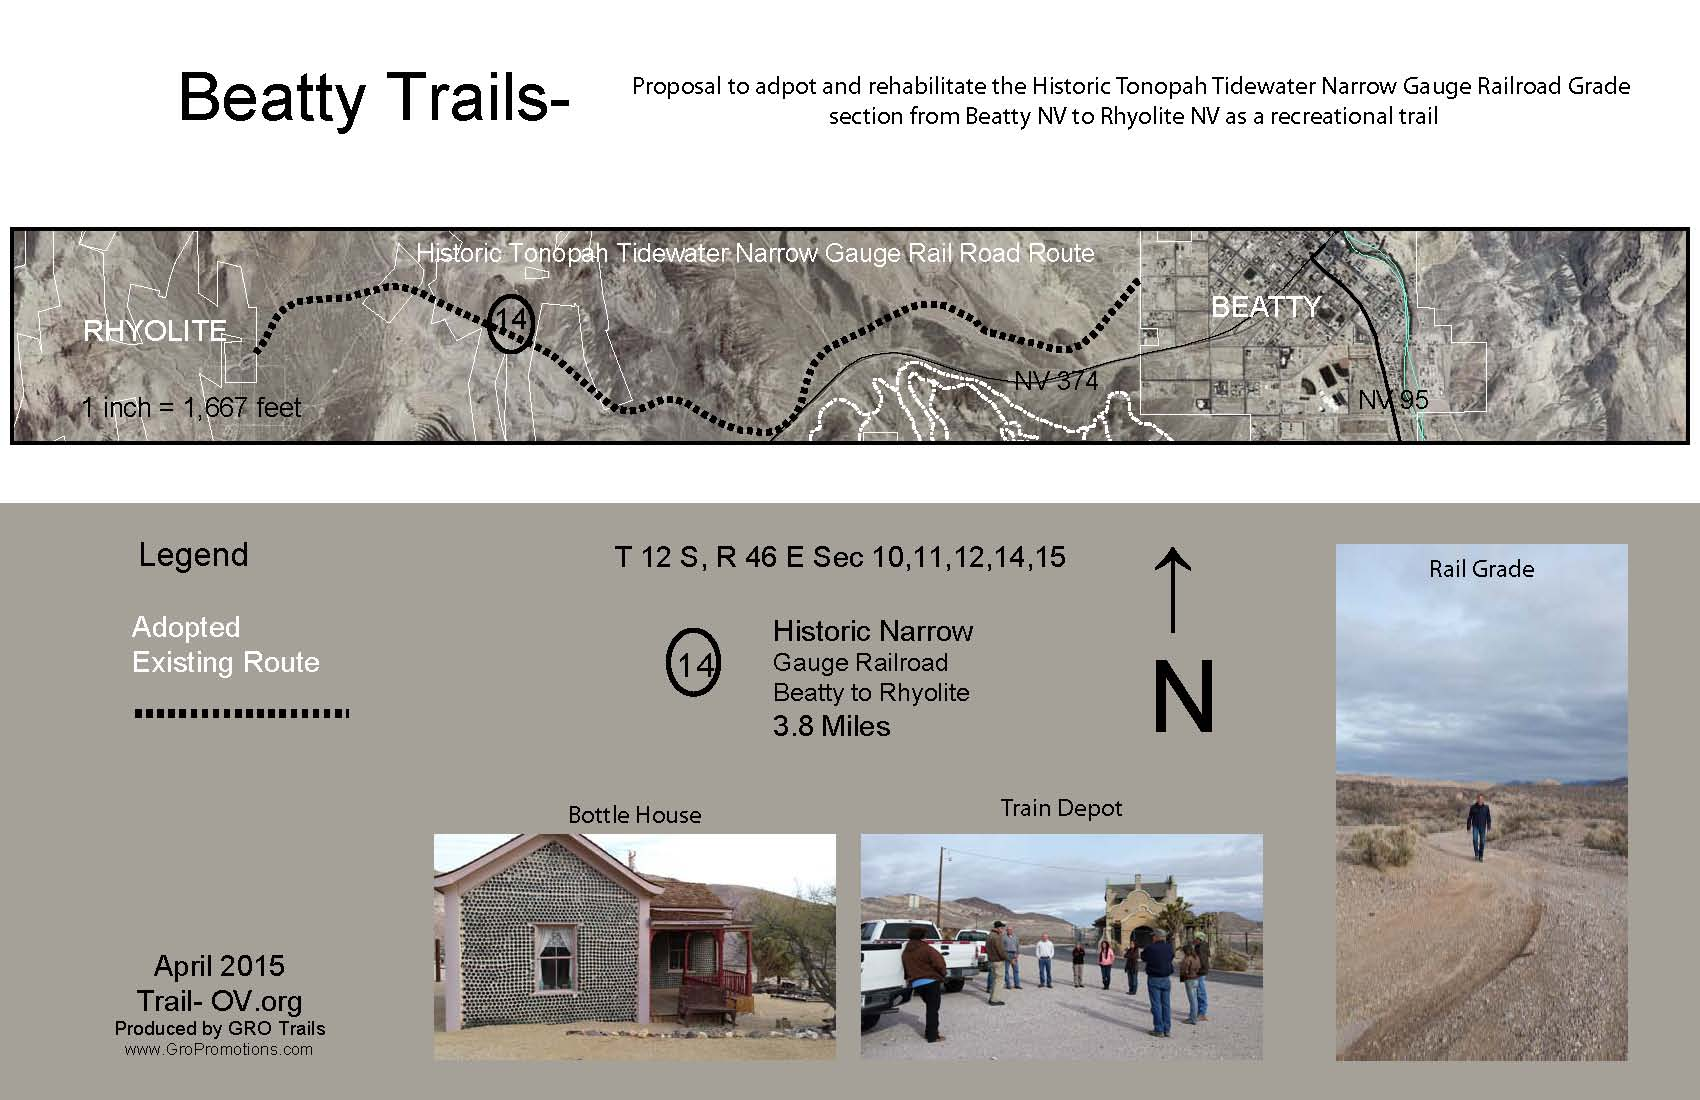 Beatty Trail Proposal- Rhyolite Rail Grade to Recreation Trail-Map 1